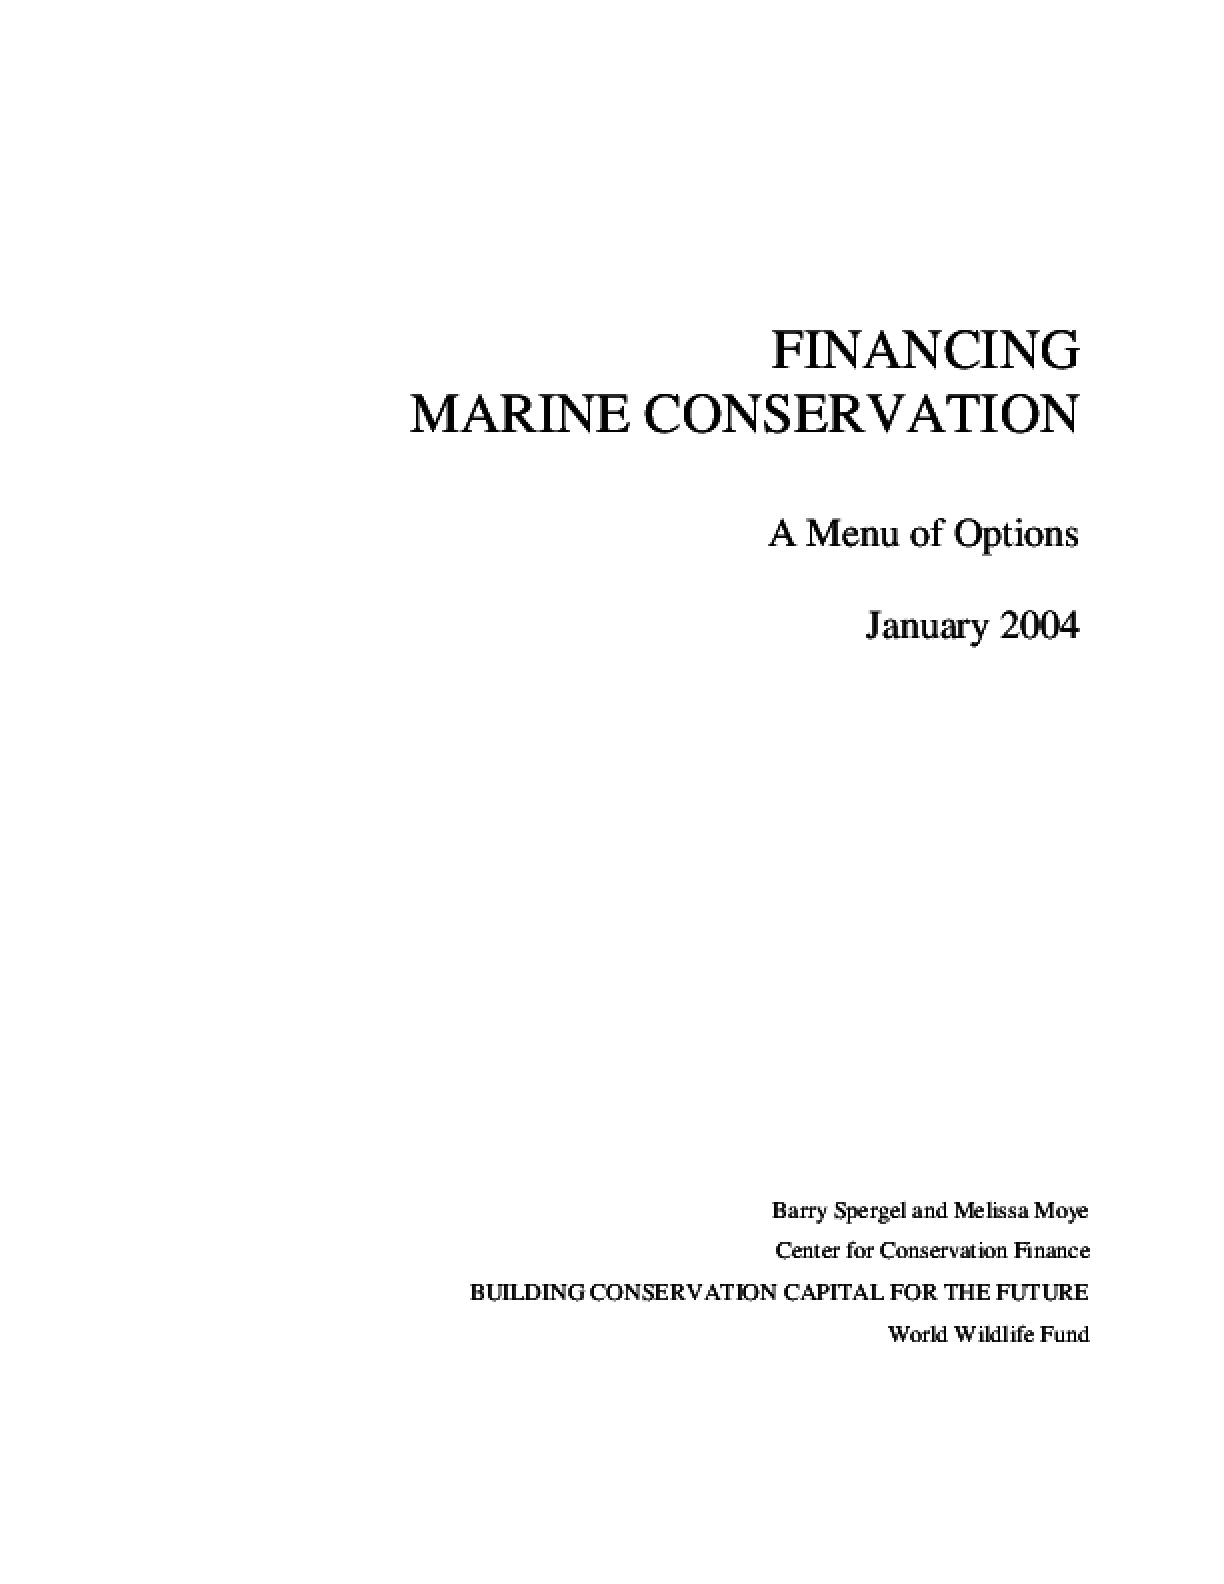 Financing Marine Conservation: A Menu of Options